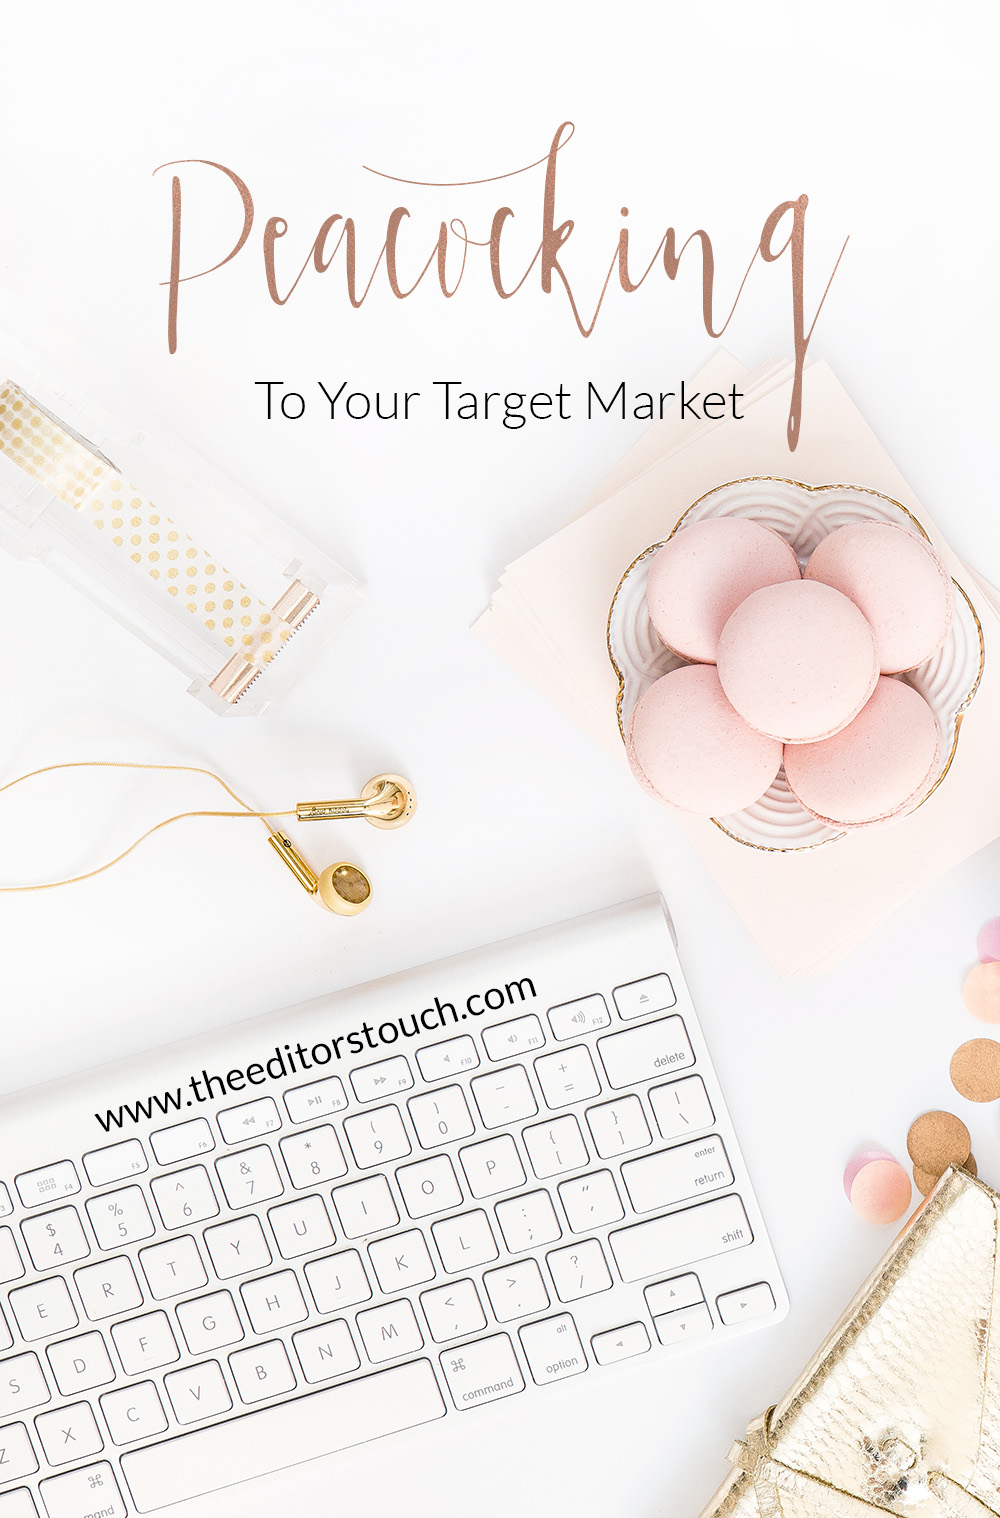 Peacocking To Your Target Market | The Editor's Touch